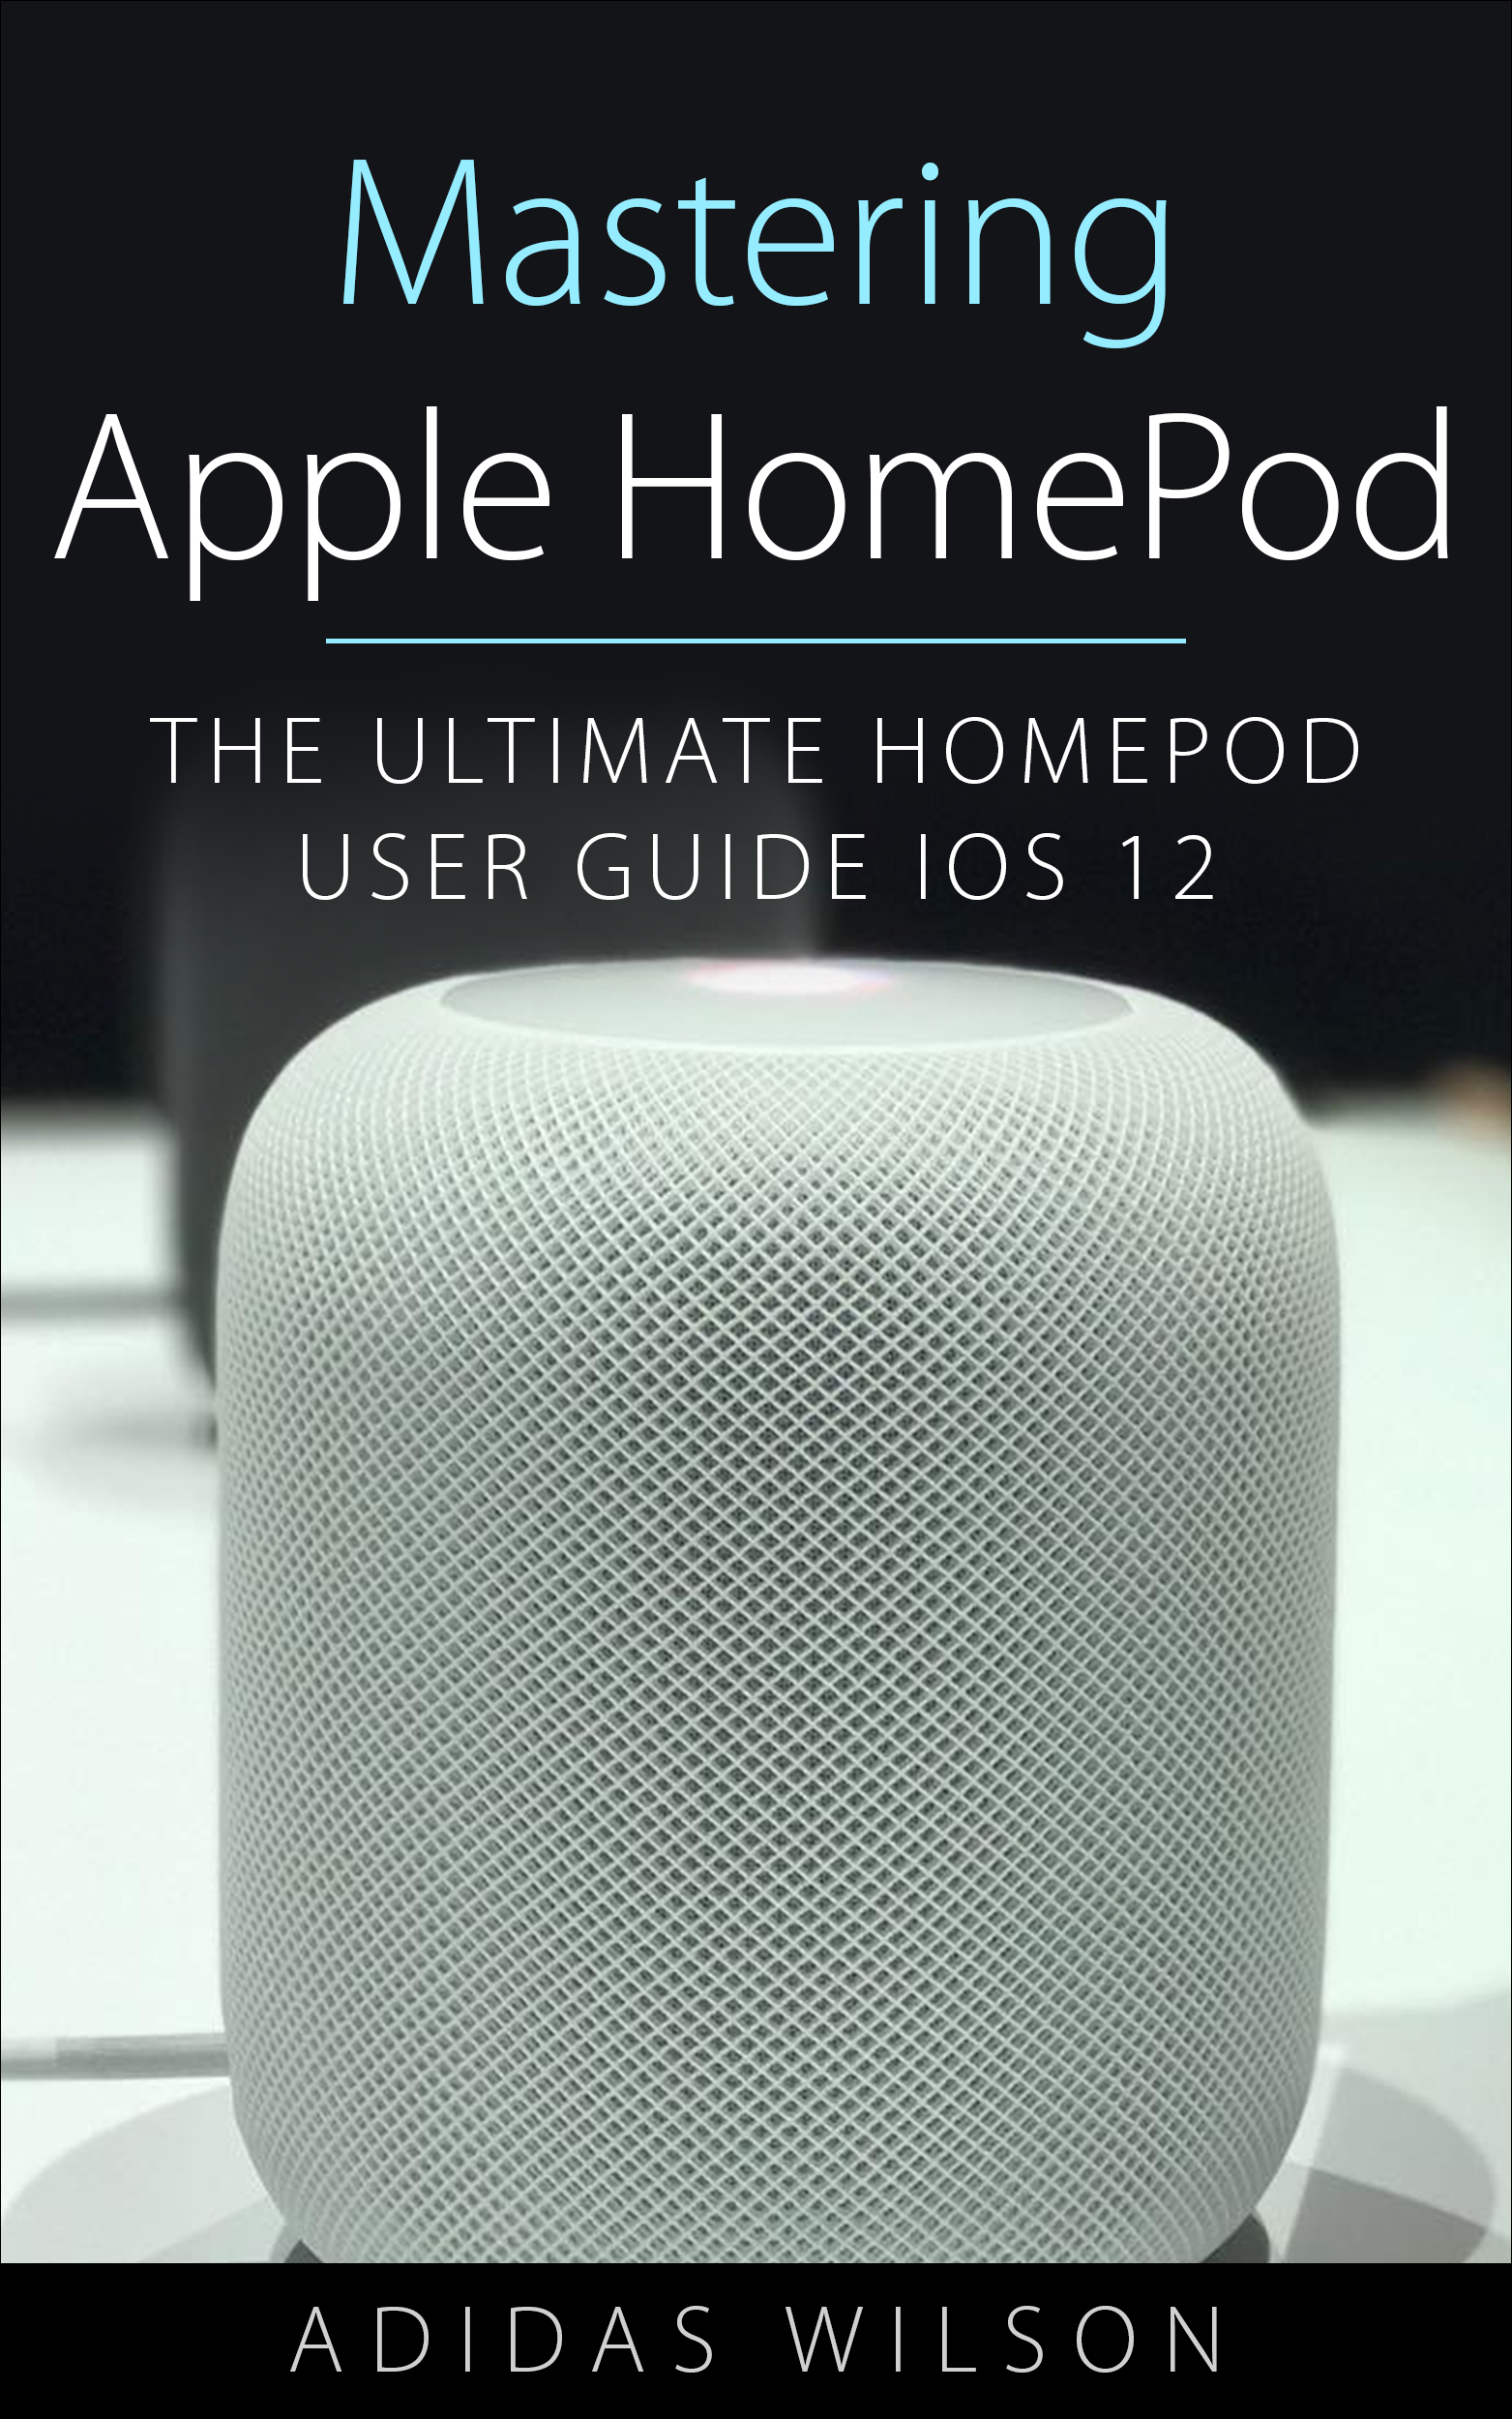 Mastering apple homepod : the ultimate homepod user guide ios 12